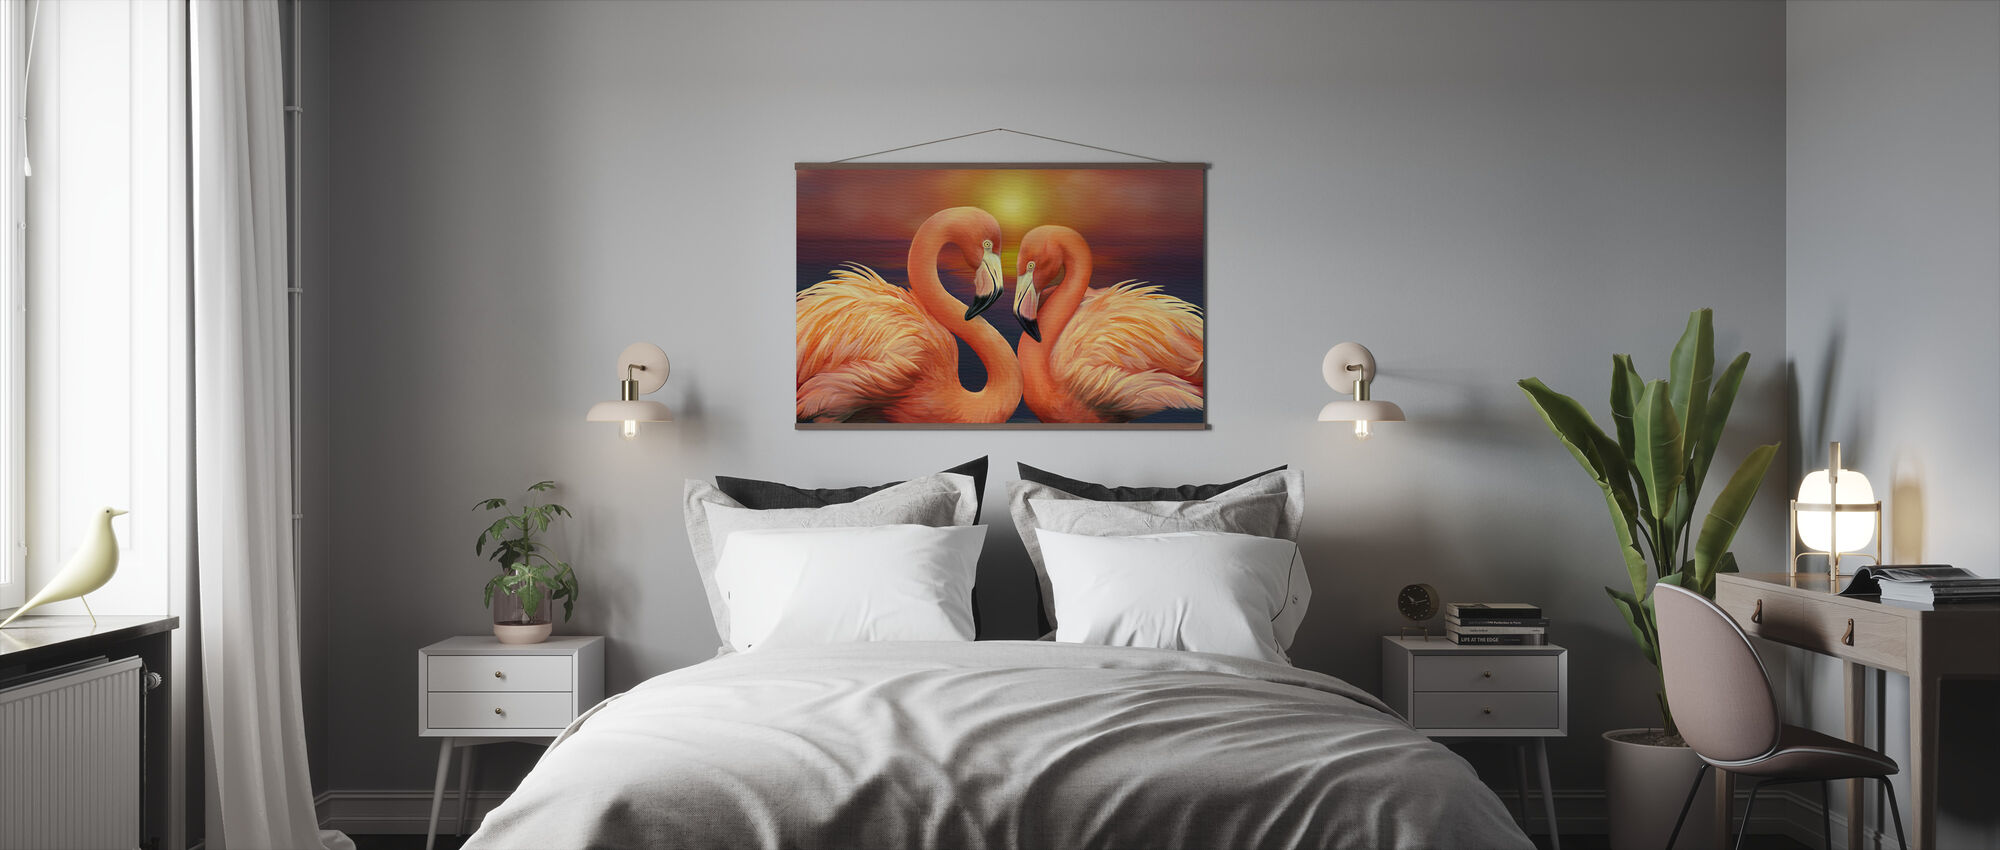 Flamingos in Love - Poster - Bedroom